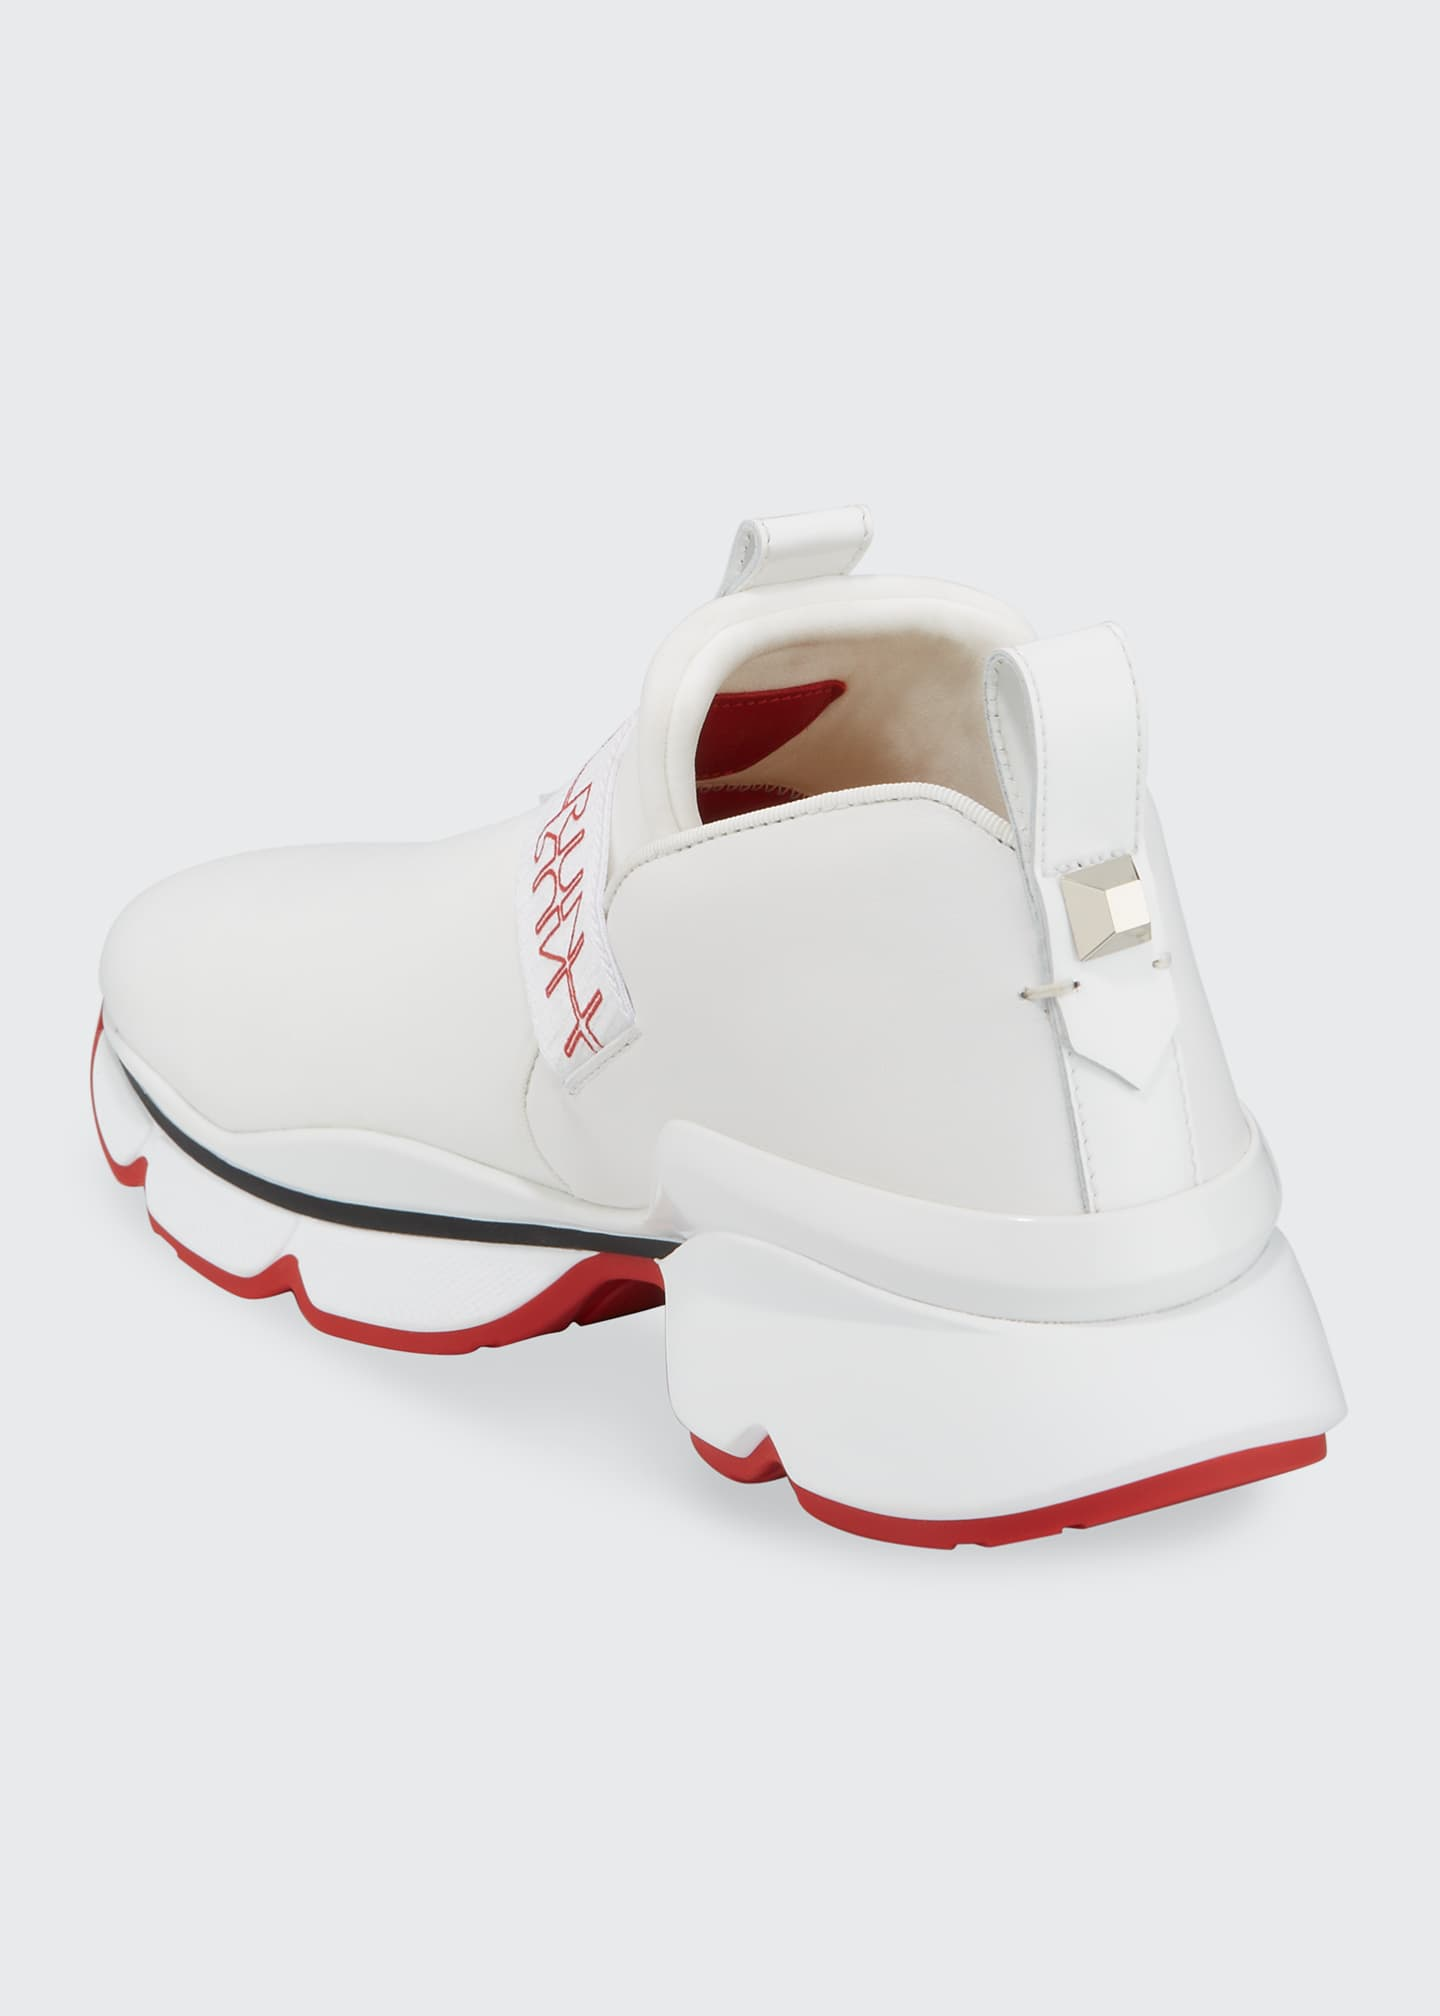 Image 3 of 4: Lipsy Run Flats Red Sole Sneakers